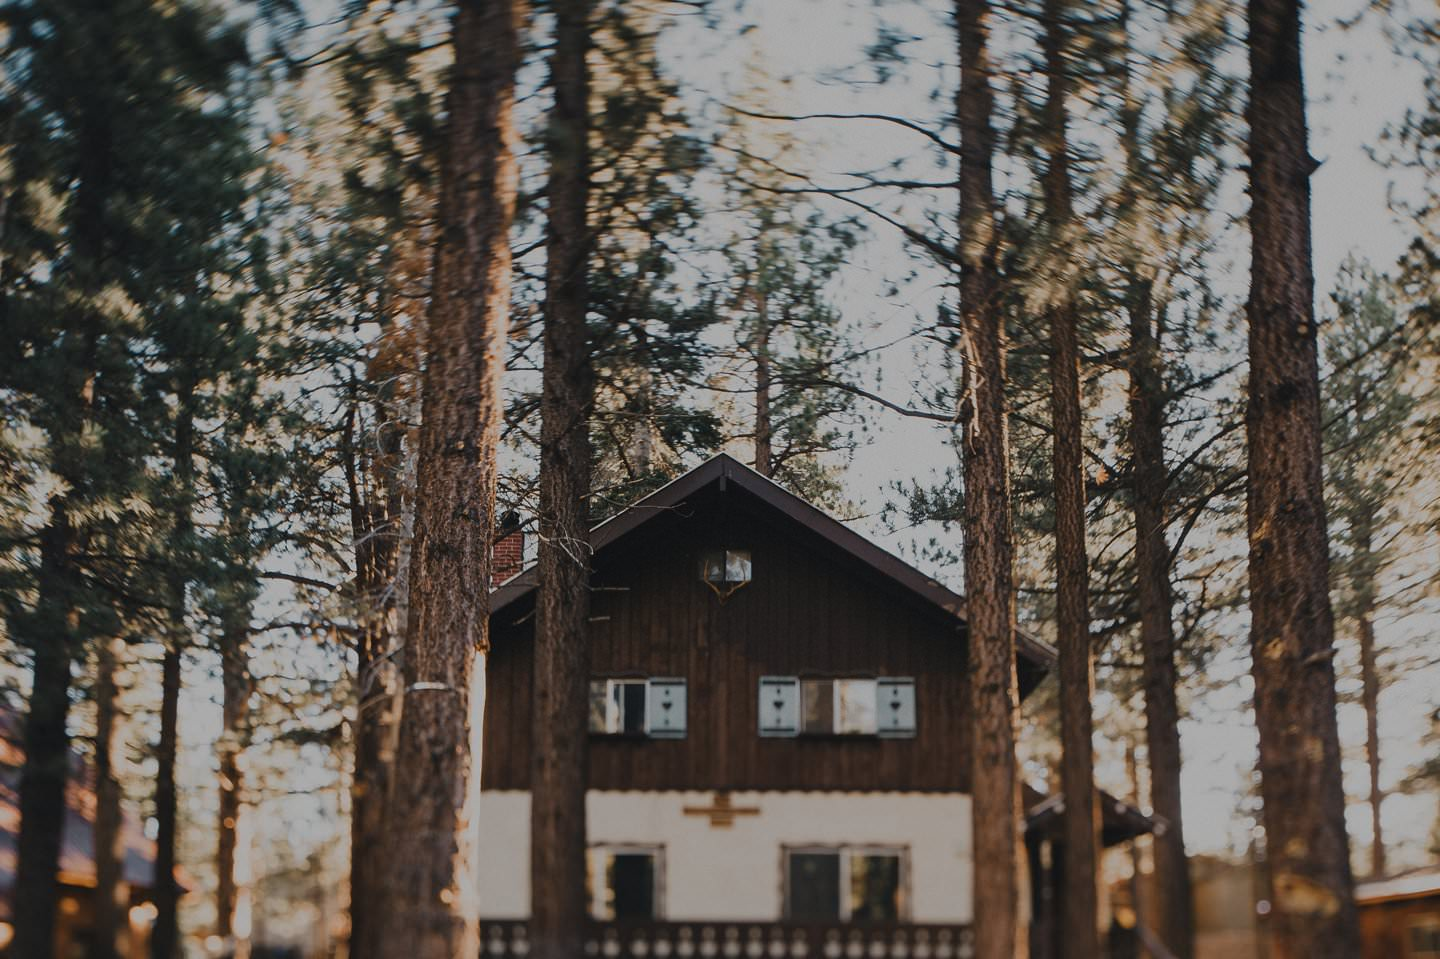 Cabin in the woods in Mammoth Lakes, California